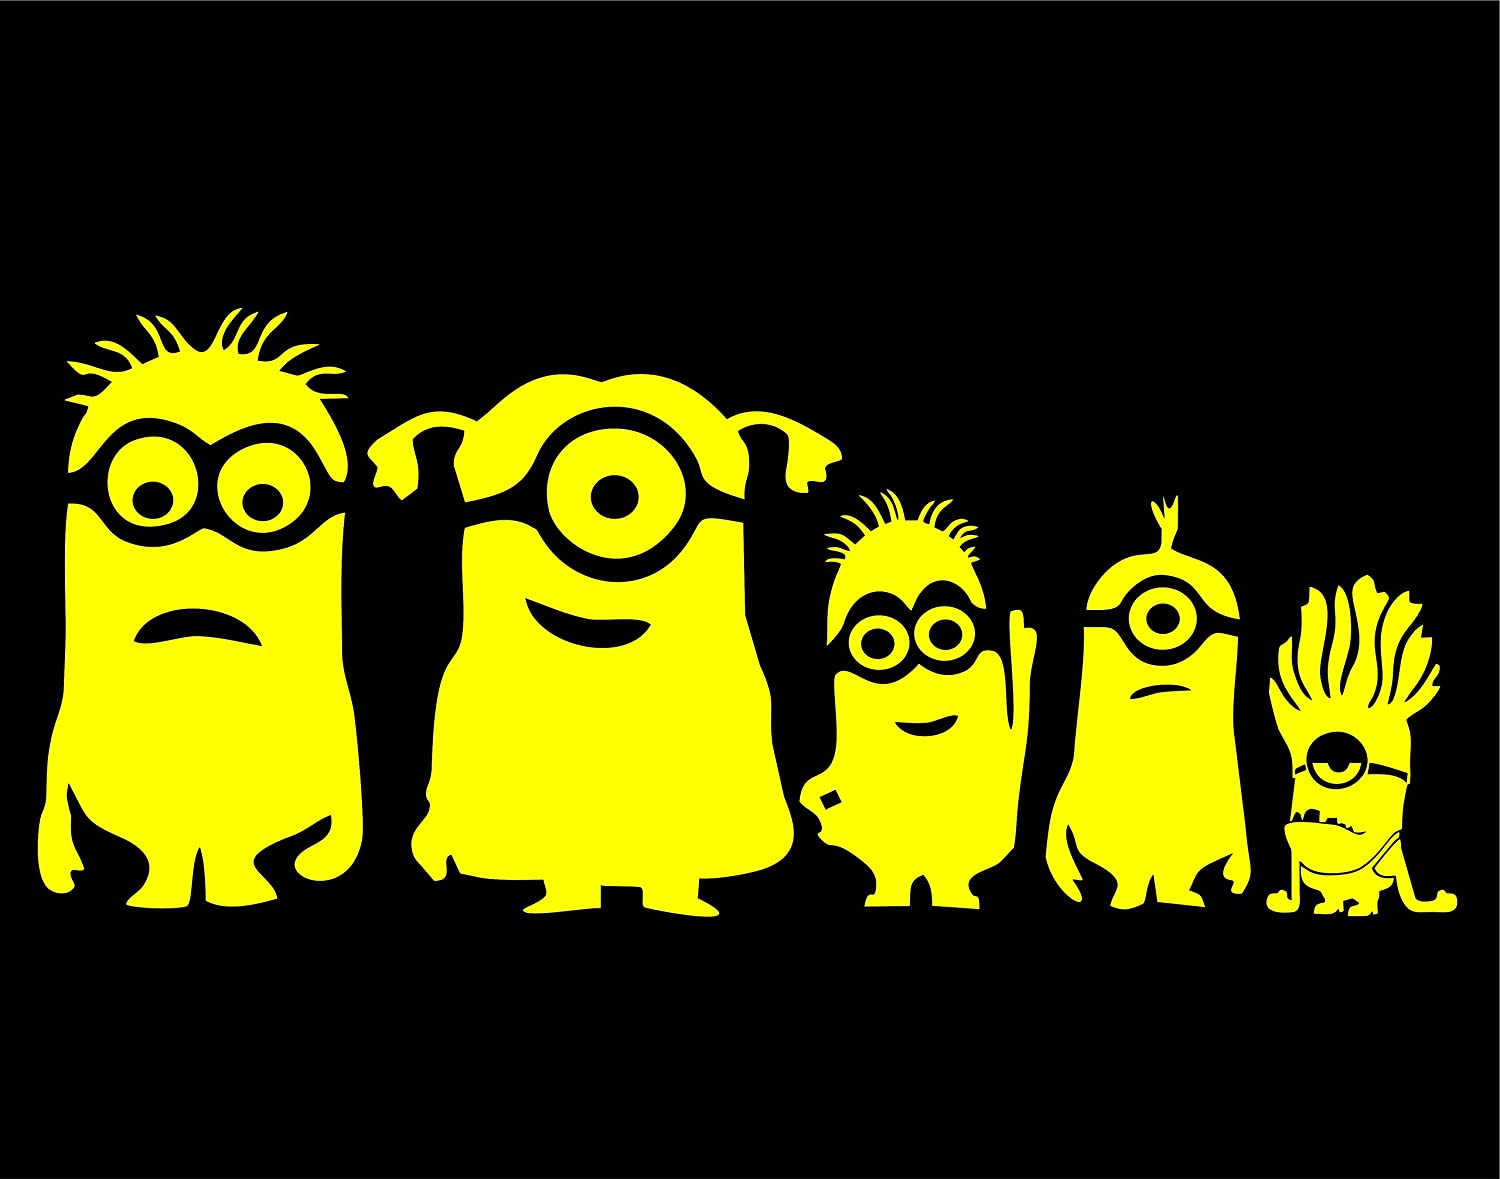 "Minion Family - 9"" x 3-1/4"" - Yellow Vinyl Die Cut Decal Bumper Sticker for Windows, Cars, Trucks, Laptops, Etc."